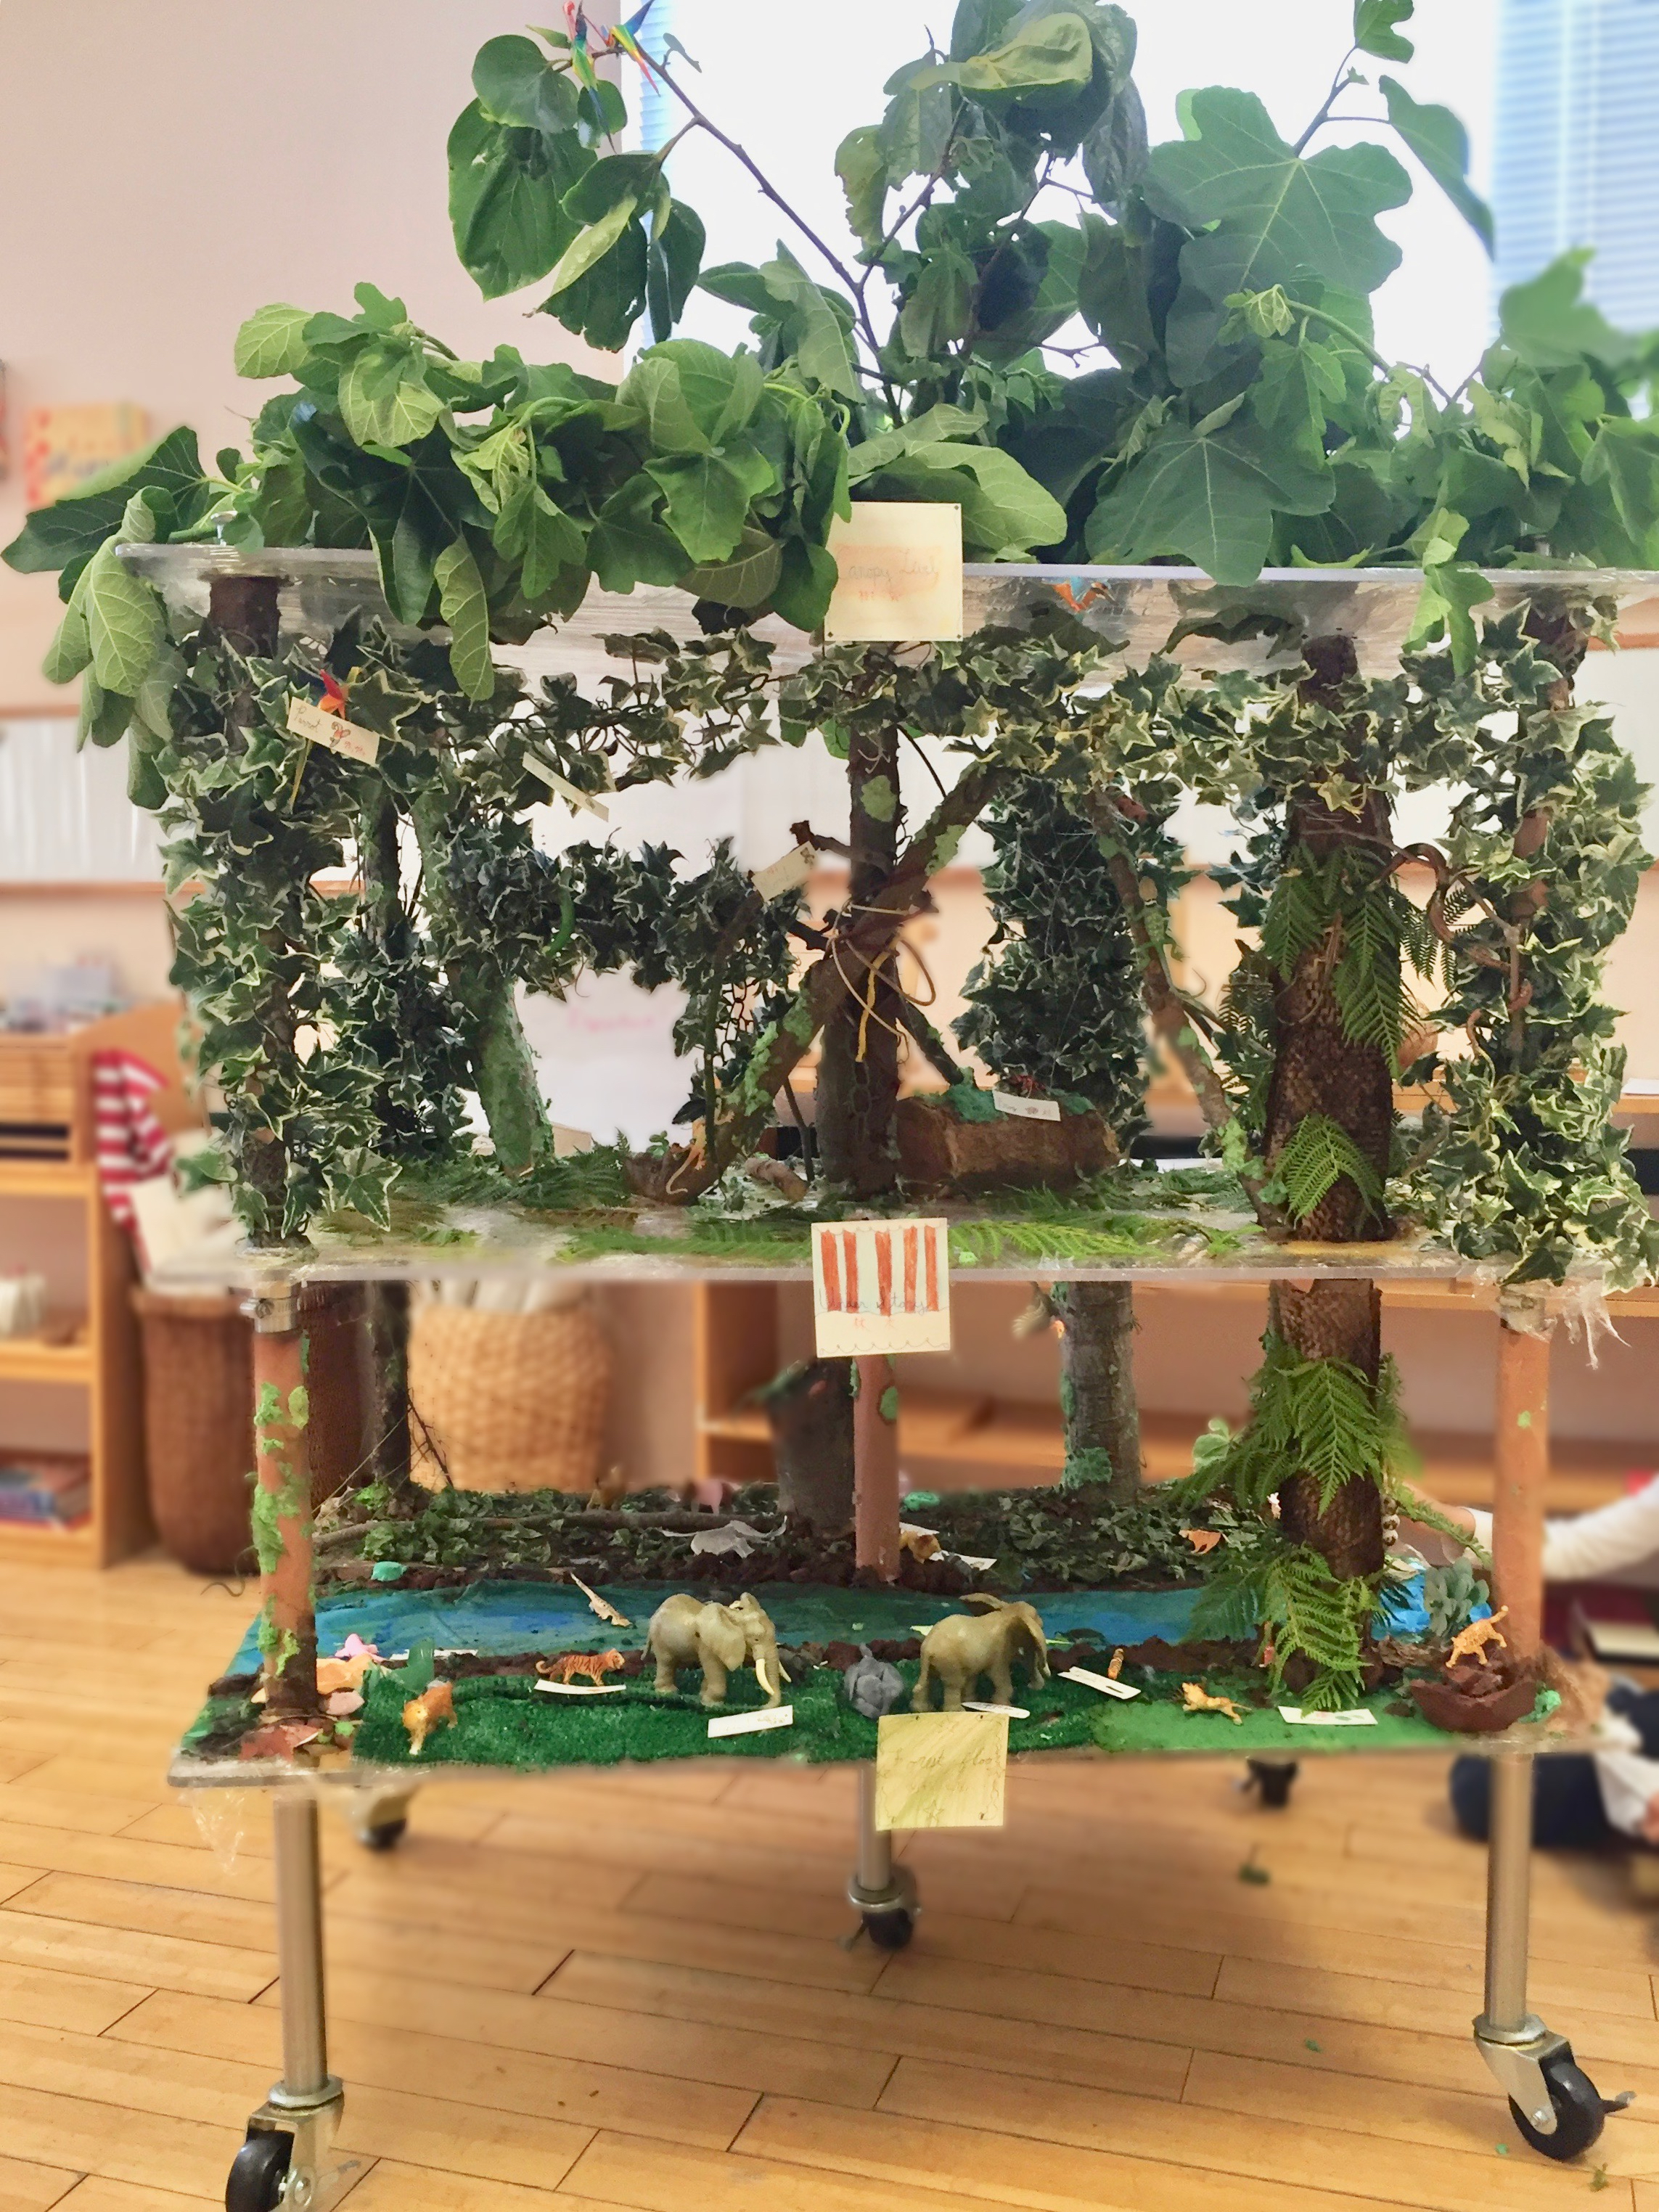 The entire class worked together to create this huge diorama showing the layers of the rainforest—complete with a living canopy and a translucent river flowing through the forest floor.